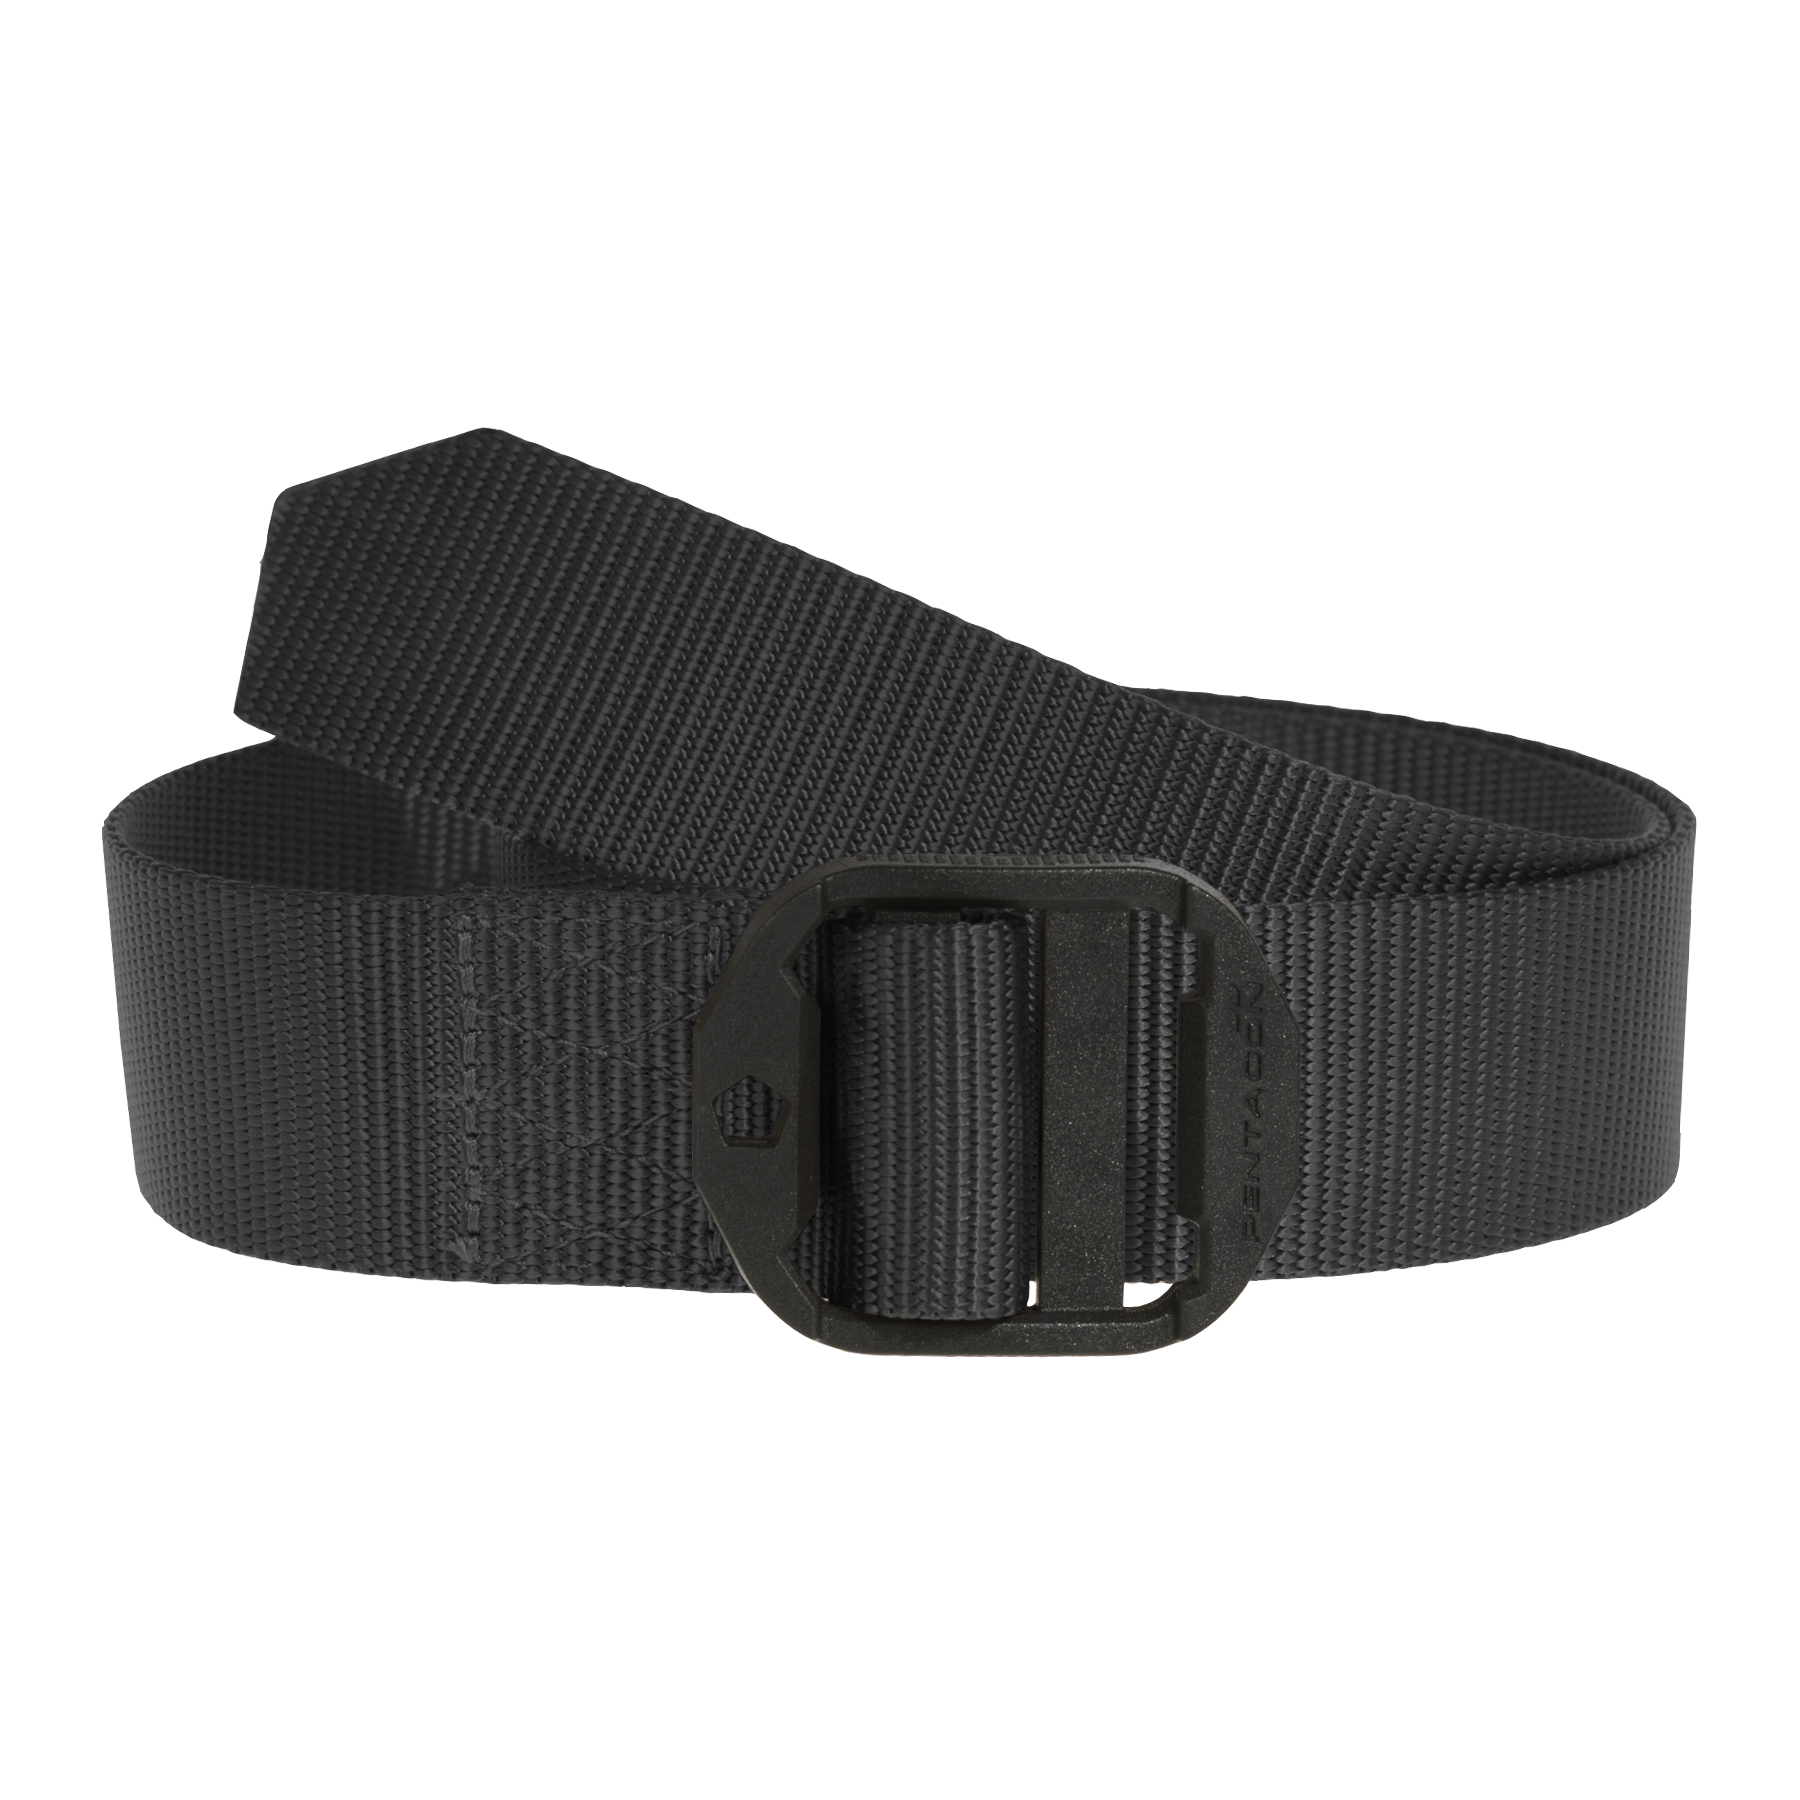 CEINTURE TACTIQUE SIMPLE